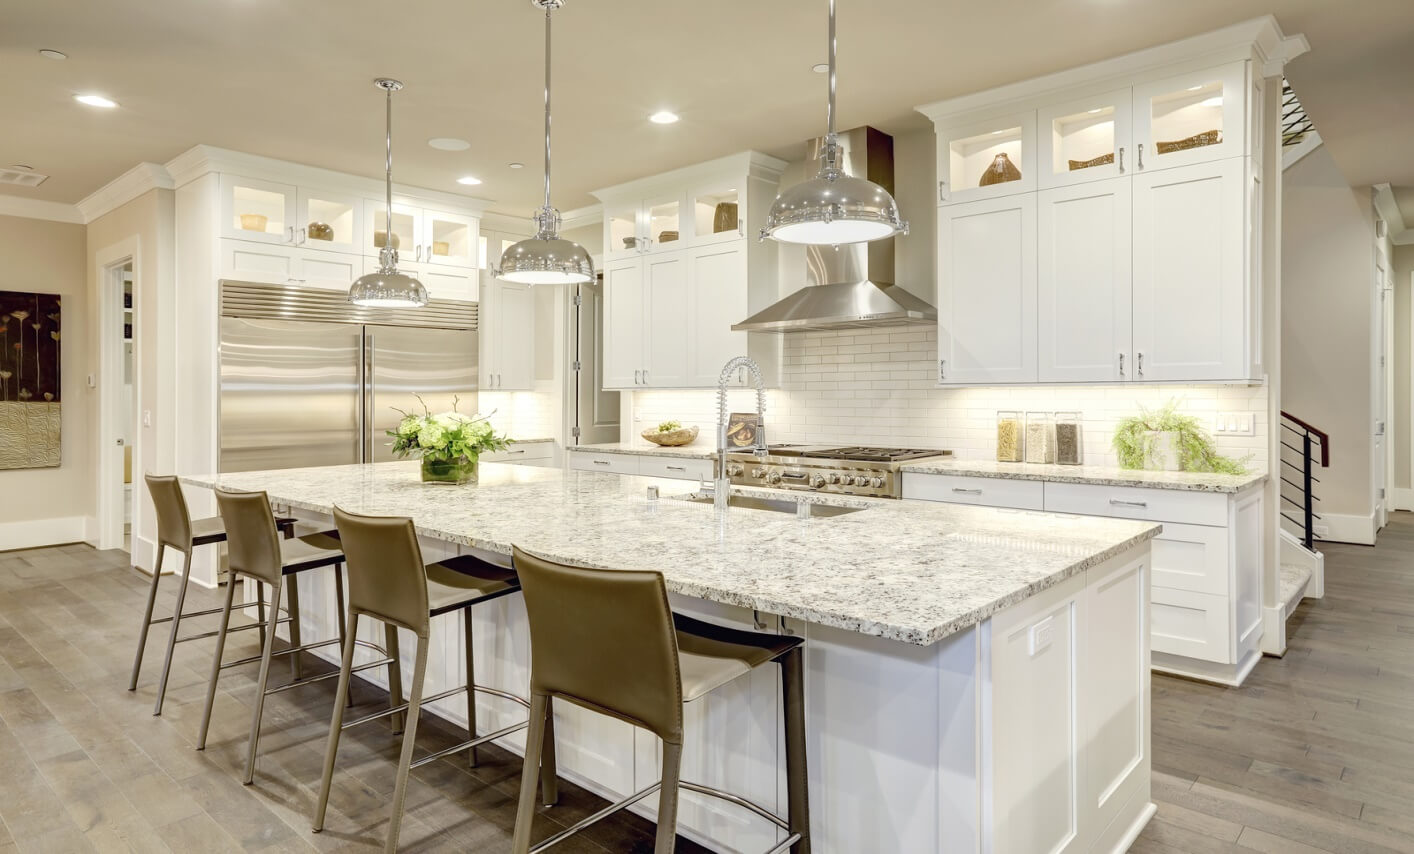 Add Or Upgrade The Kitchen Island